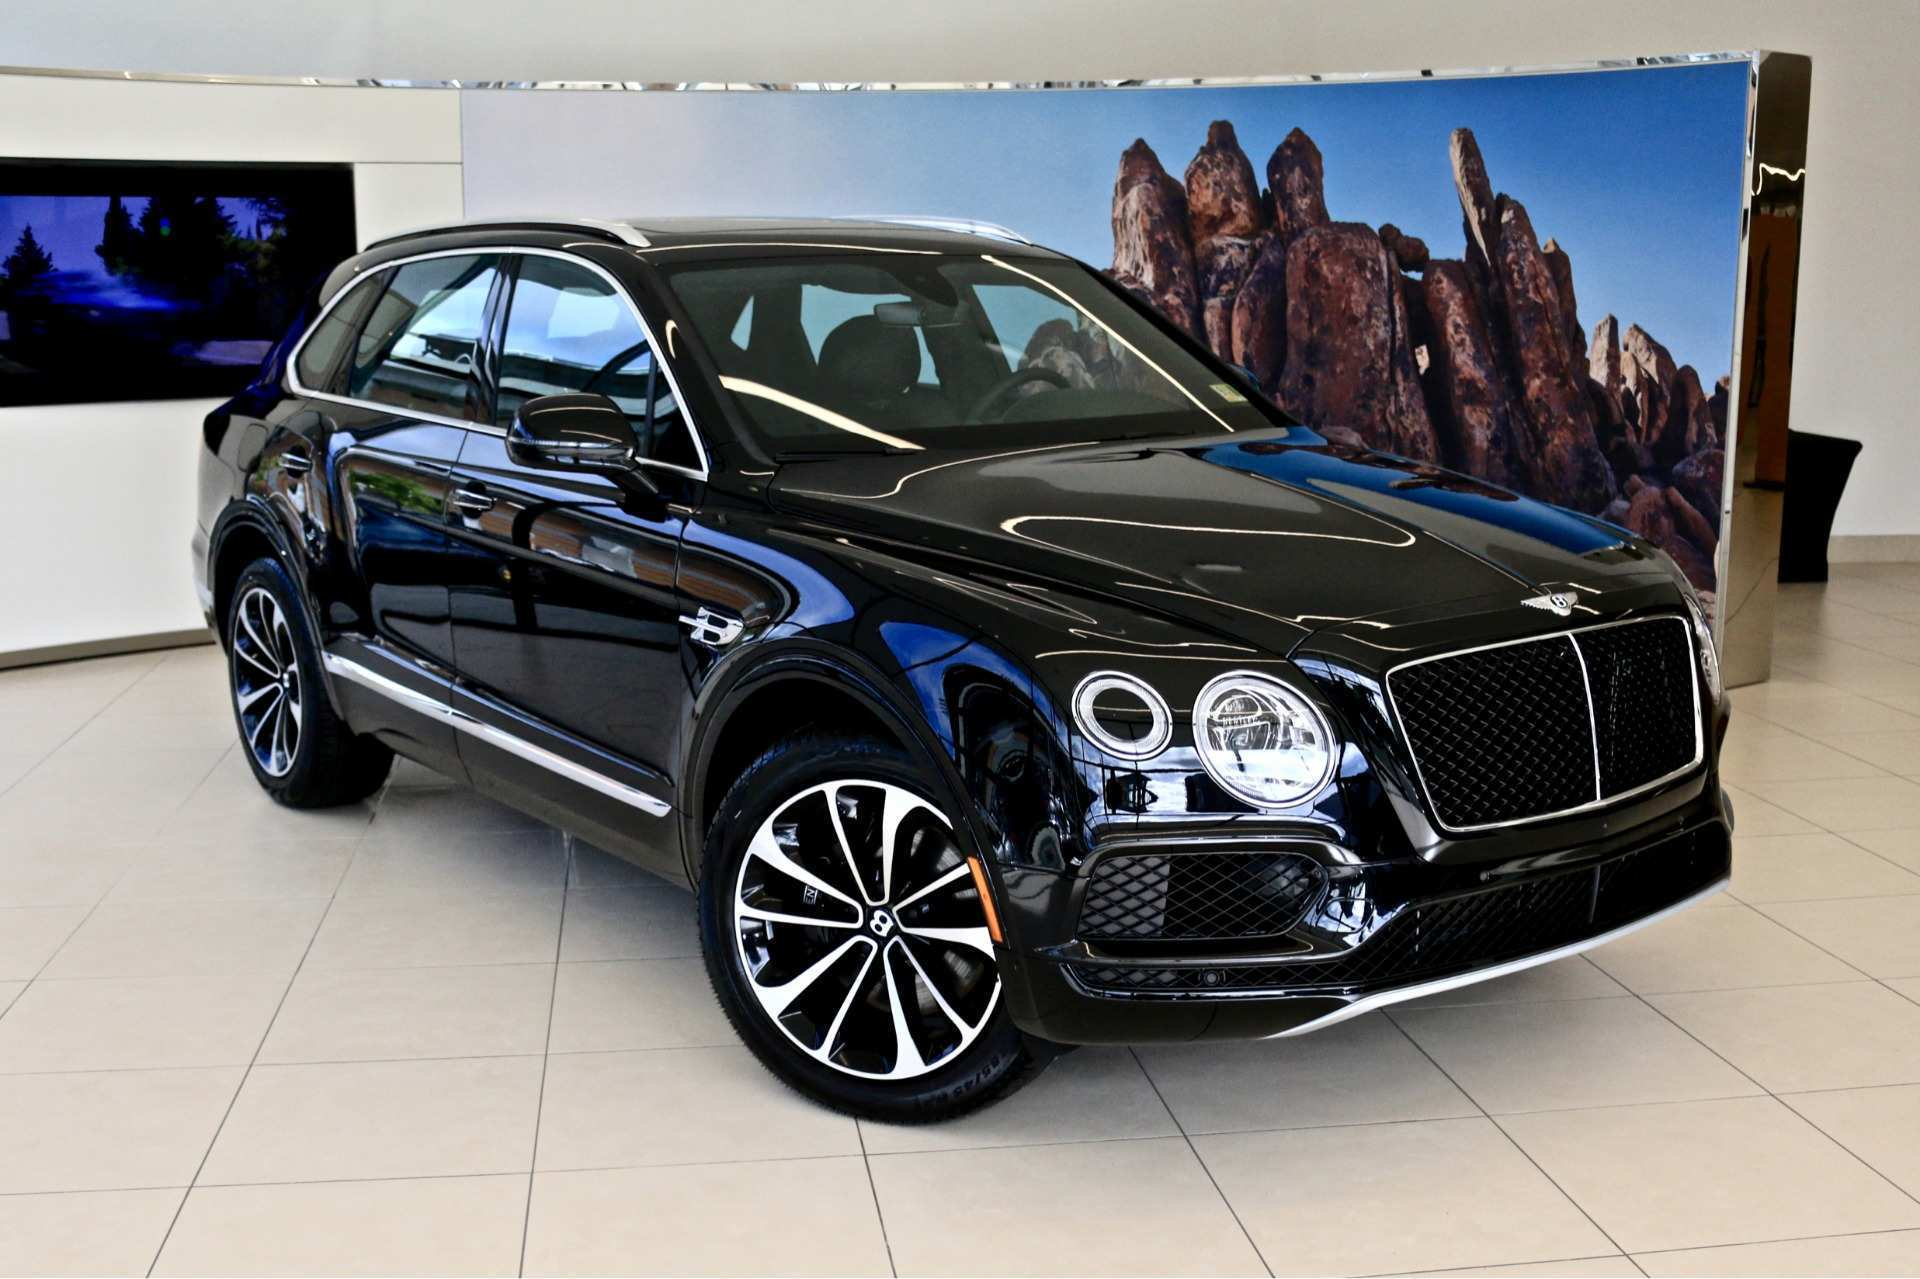 67 Gallery of 2019 Bentley Bentayga V8 Price Performance with 2019 Bentley Bentayga V8 Price